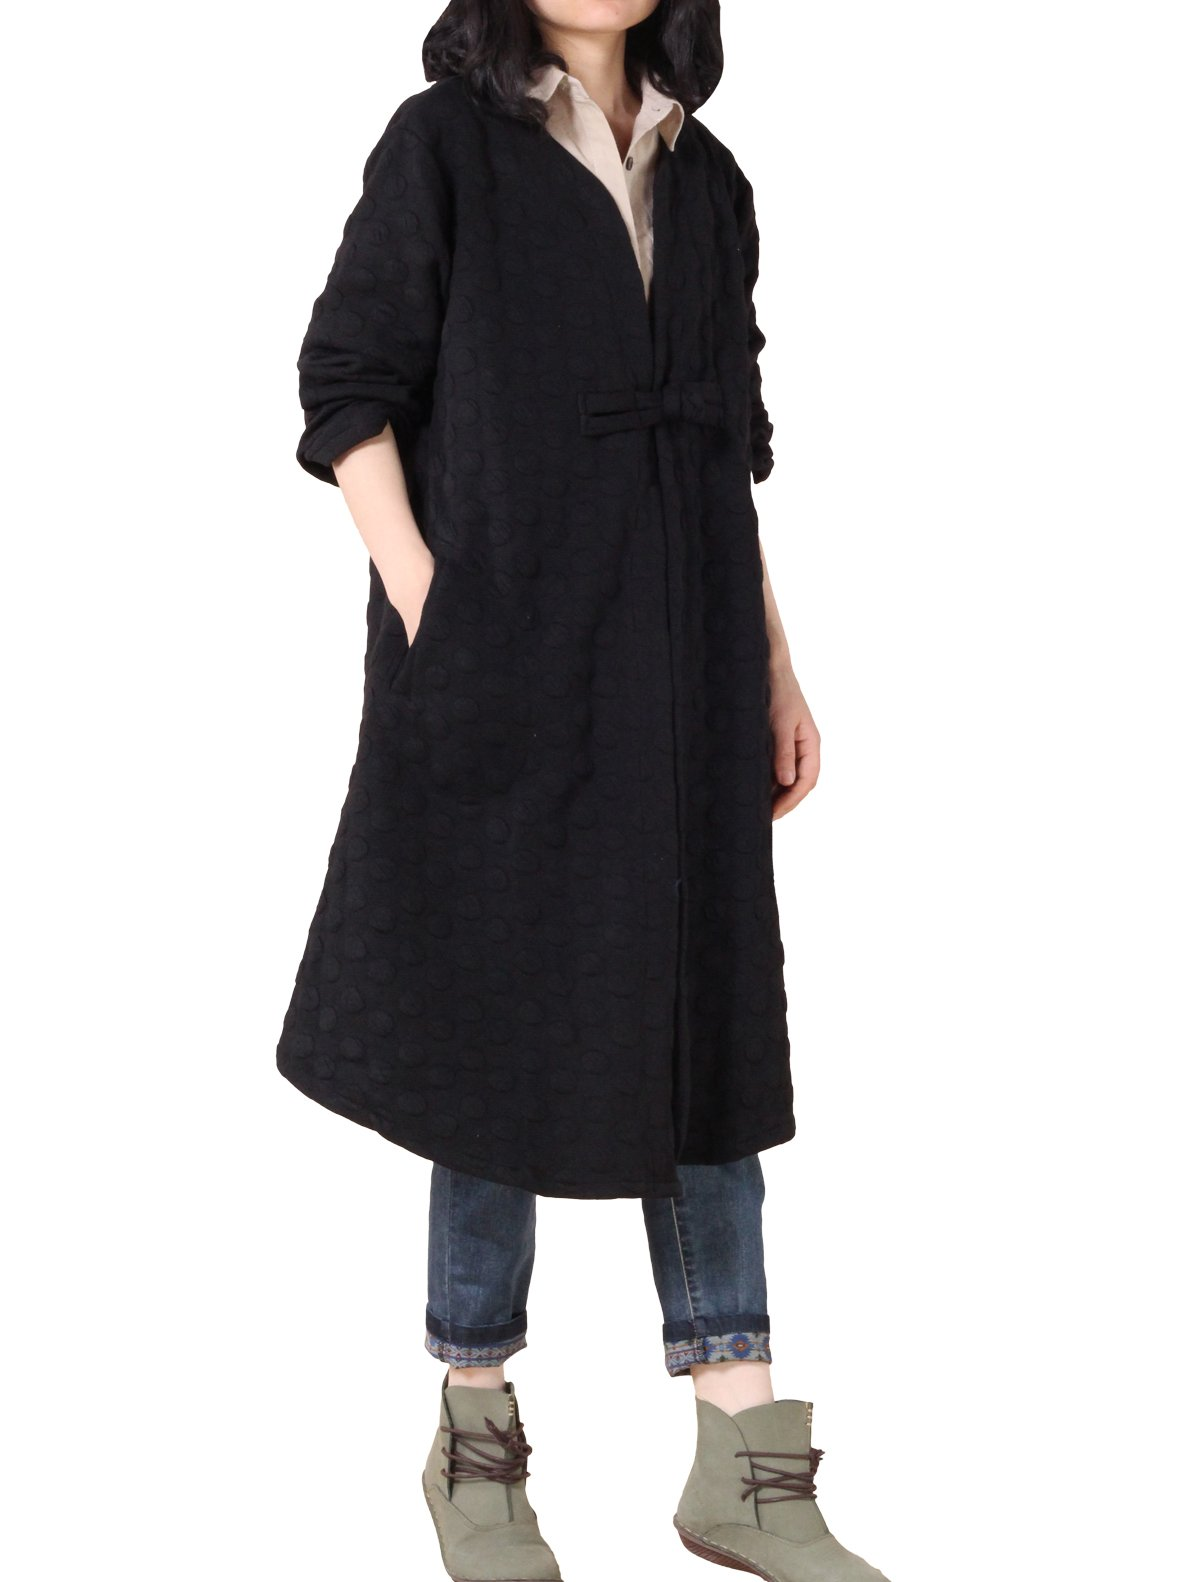 Mordenmiss Women's Long Sleeves One Chinese Frog Button Trench Coat with Pockets(M, Style 1-Black)